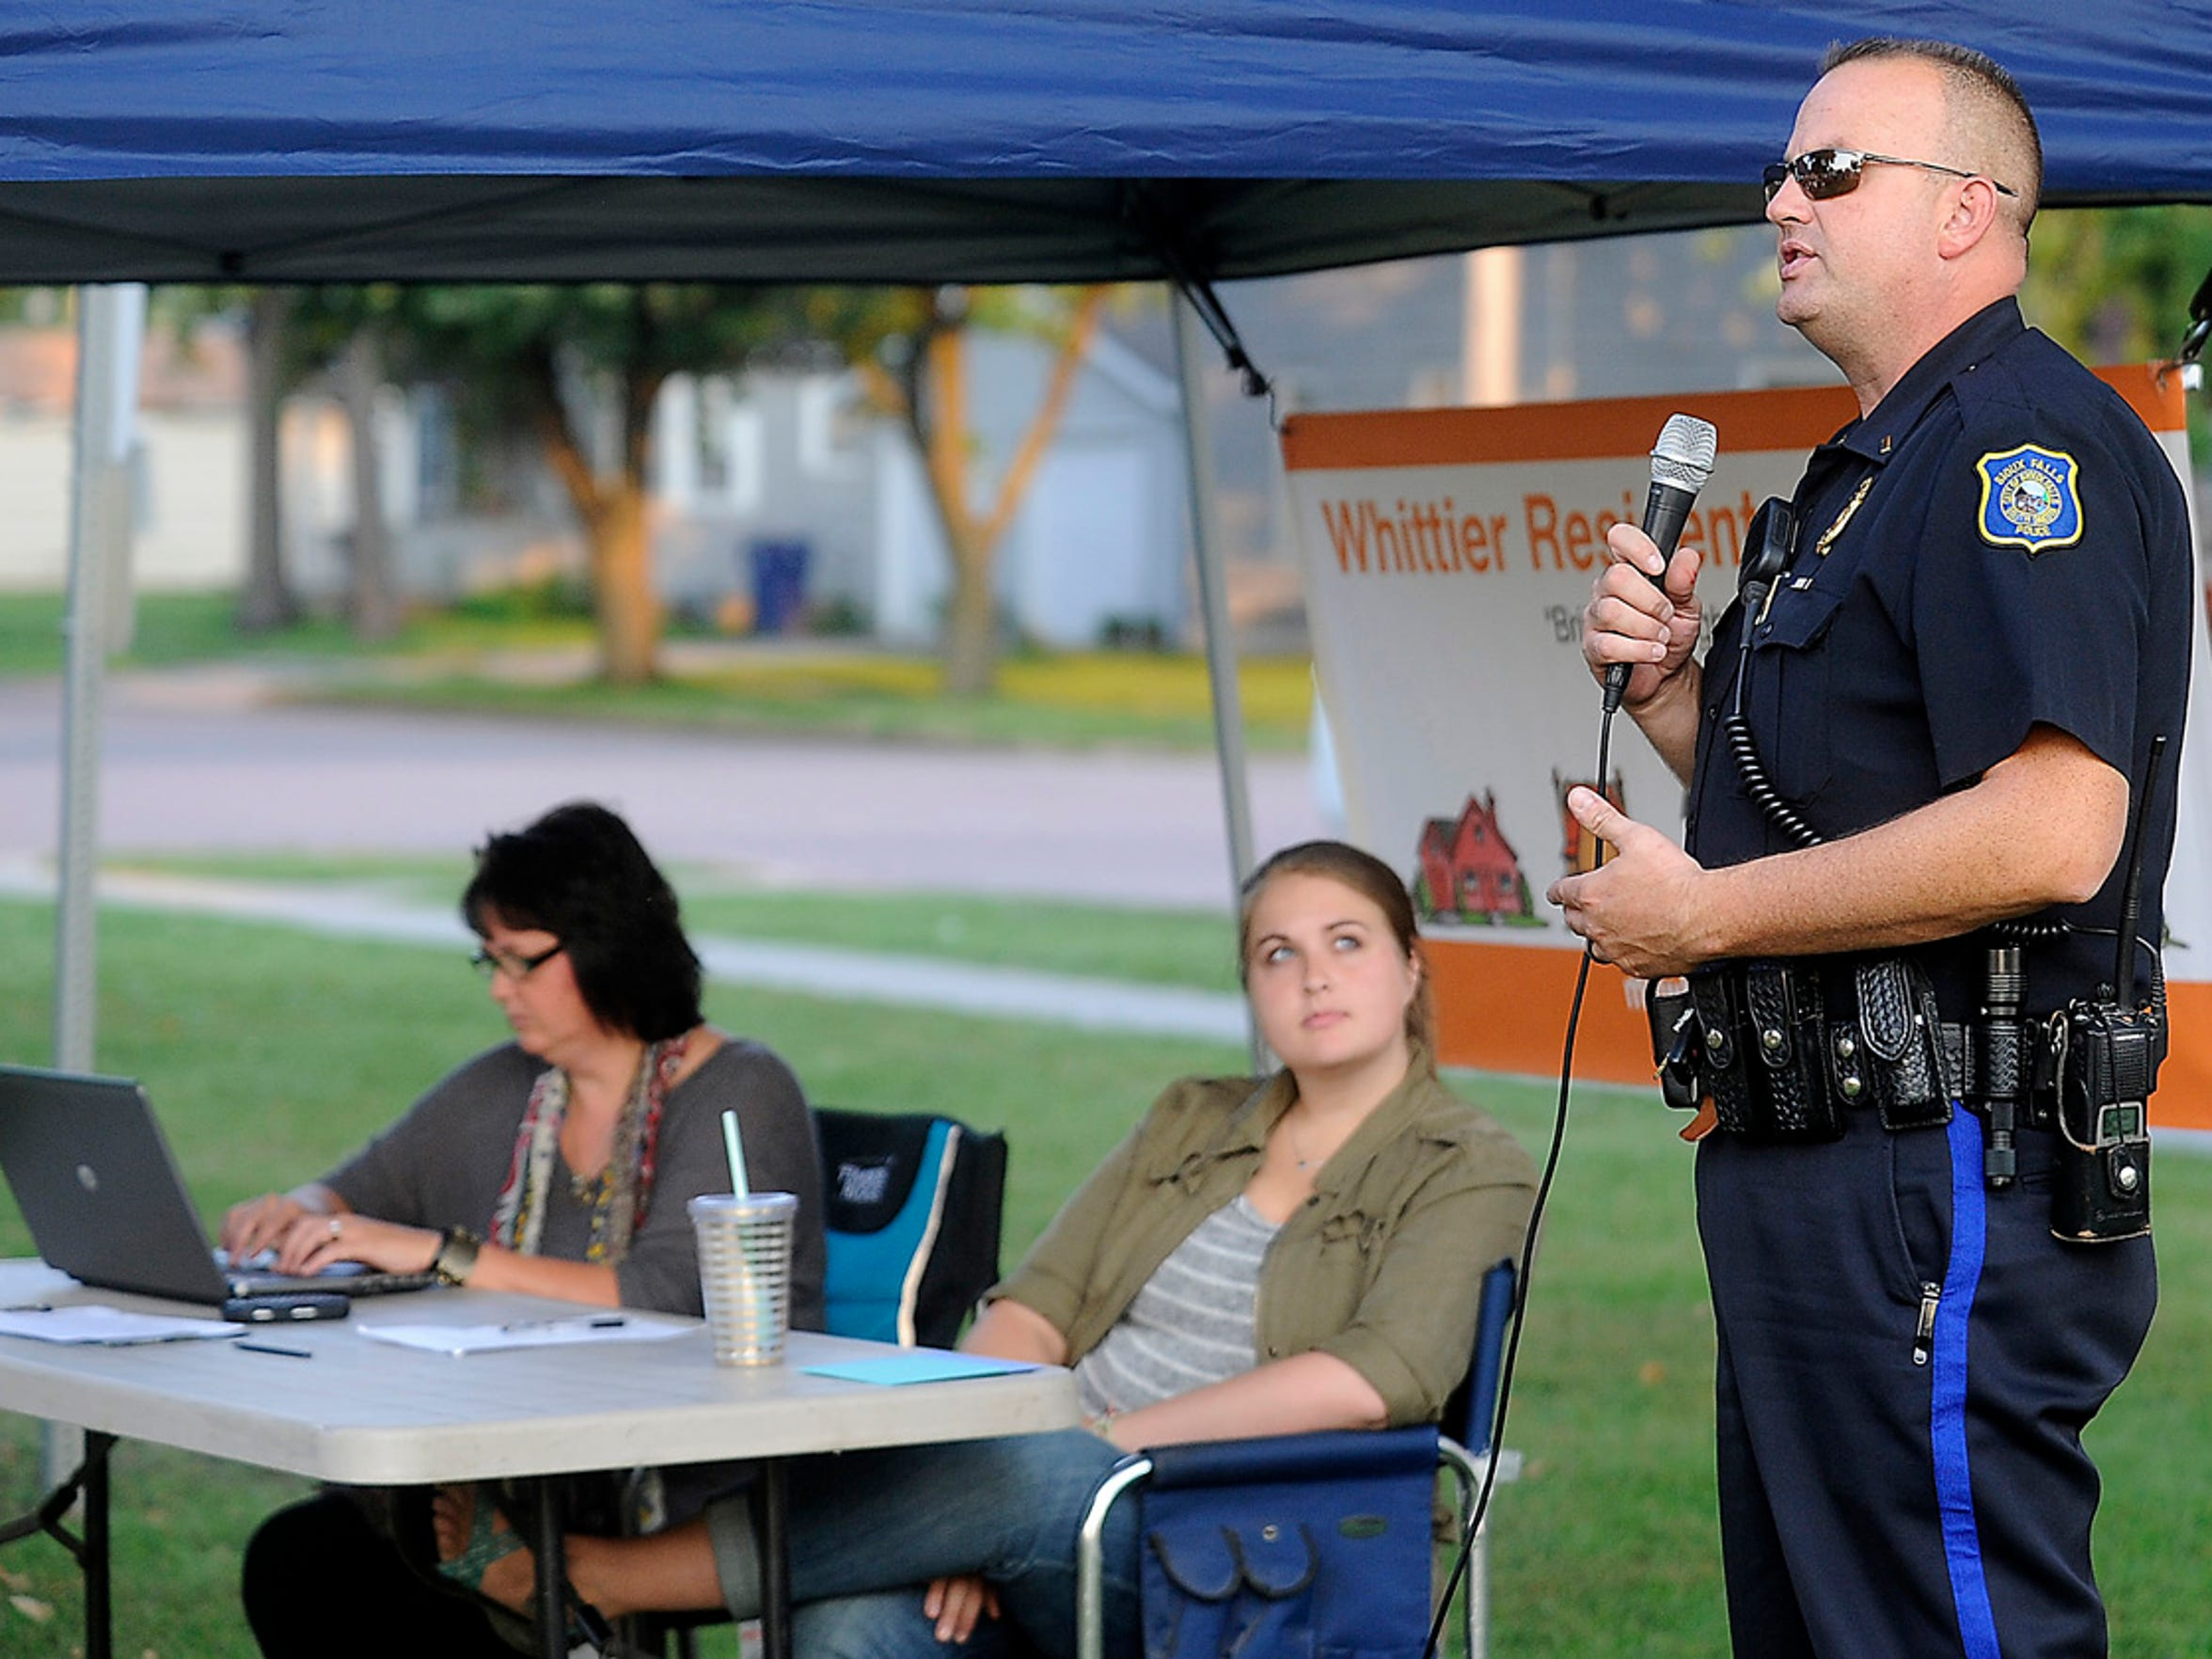 Sgt. Keith Gries talks with Whittier neighborhood residents about public safety concerns at Heritage Park in August 2015.